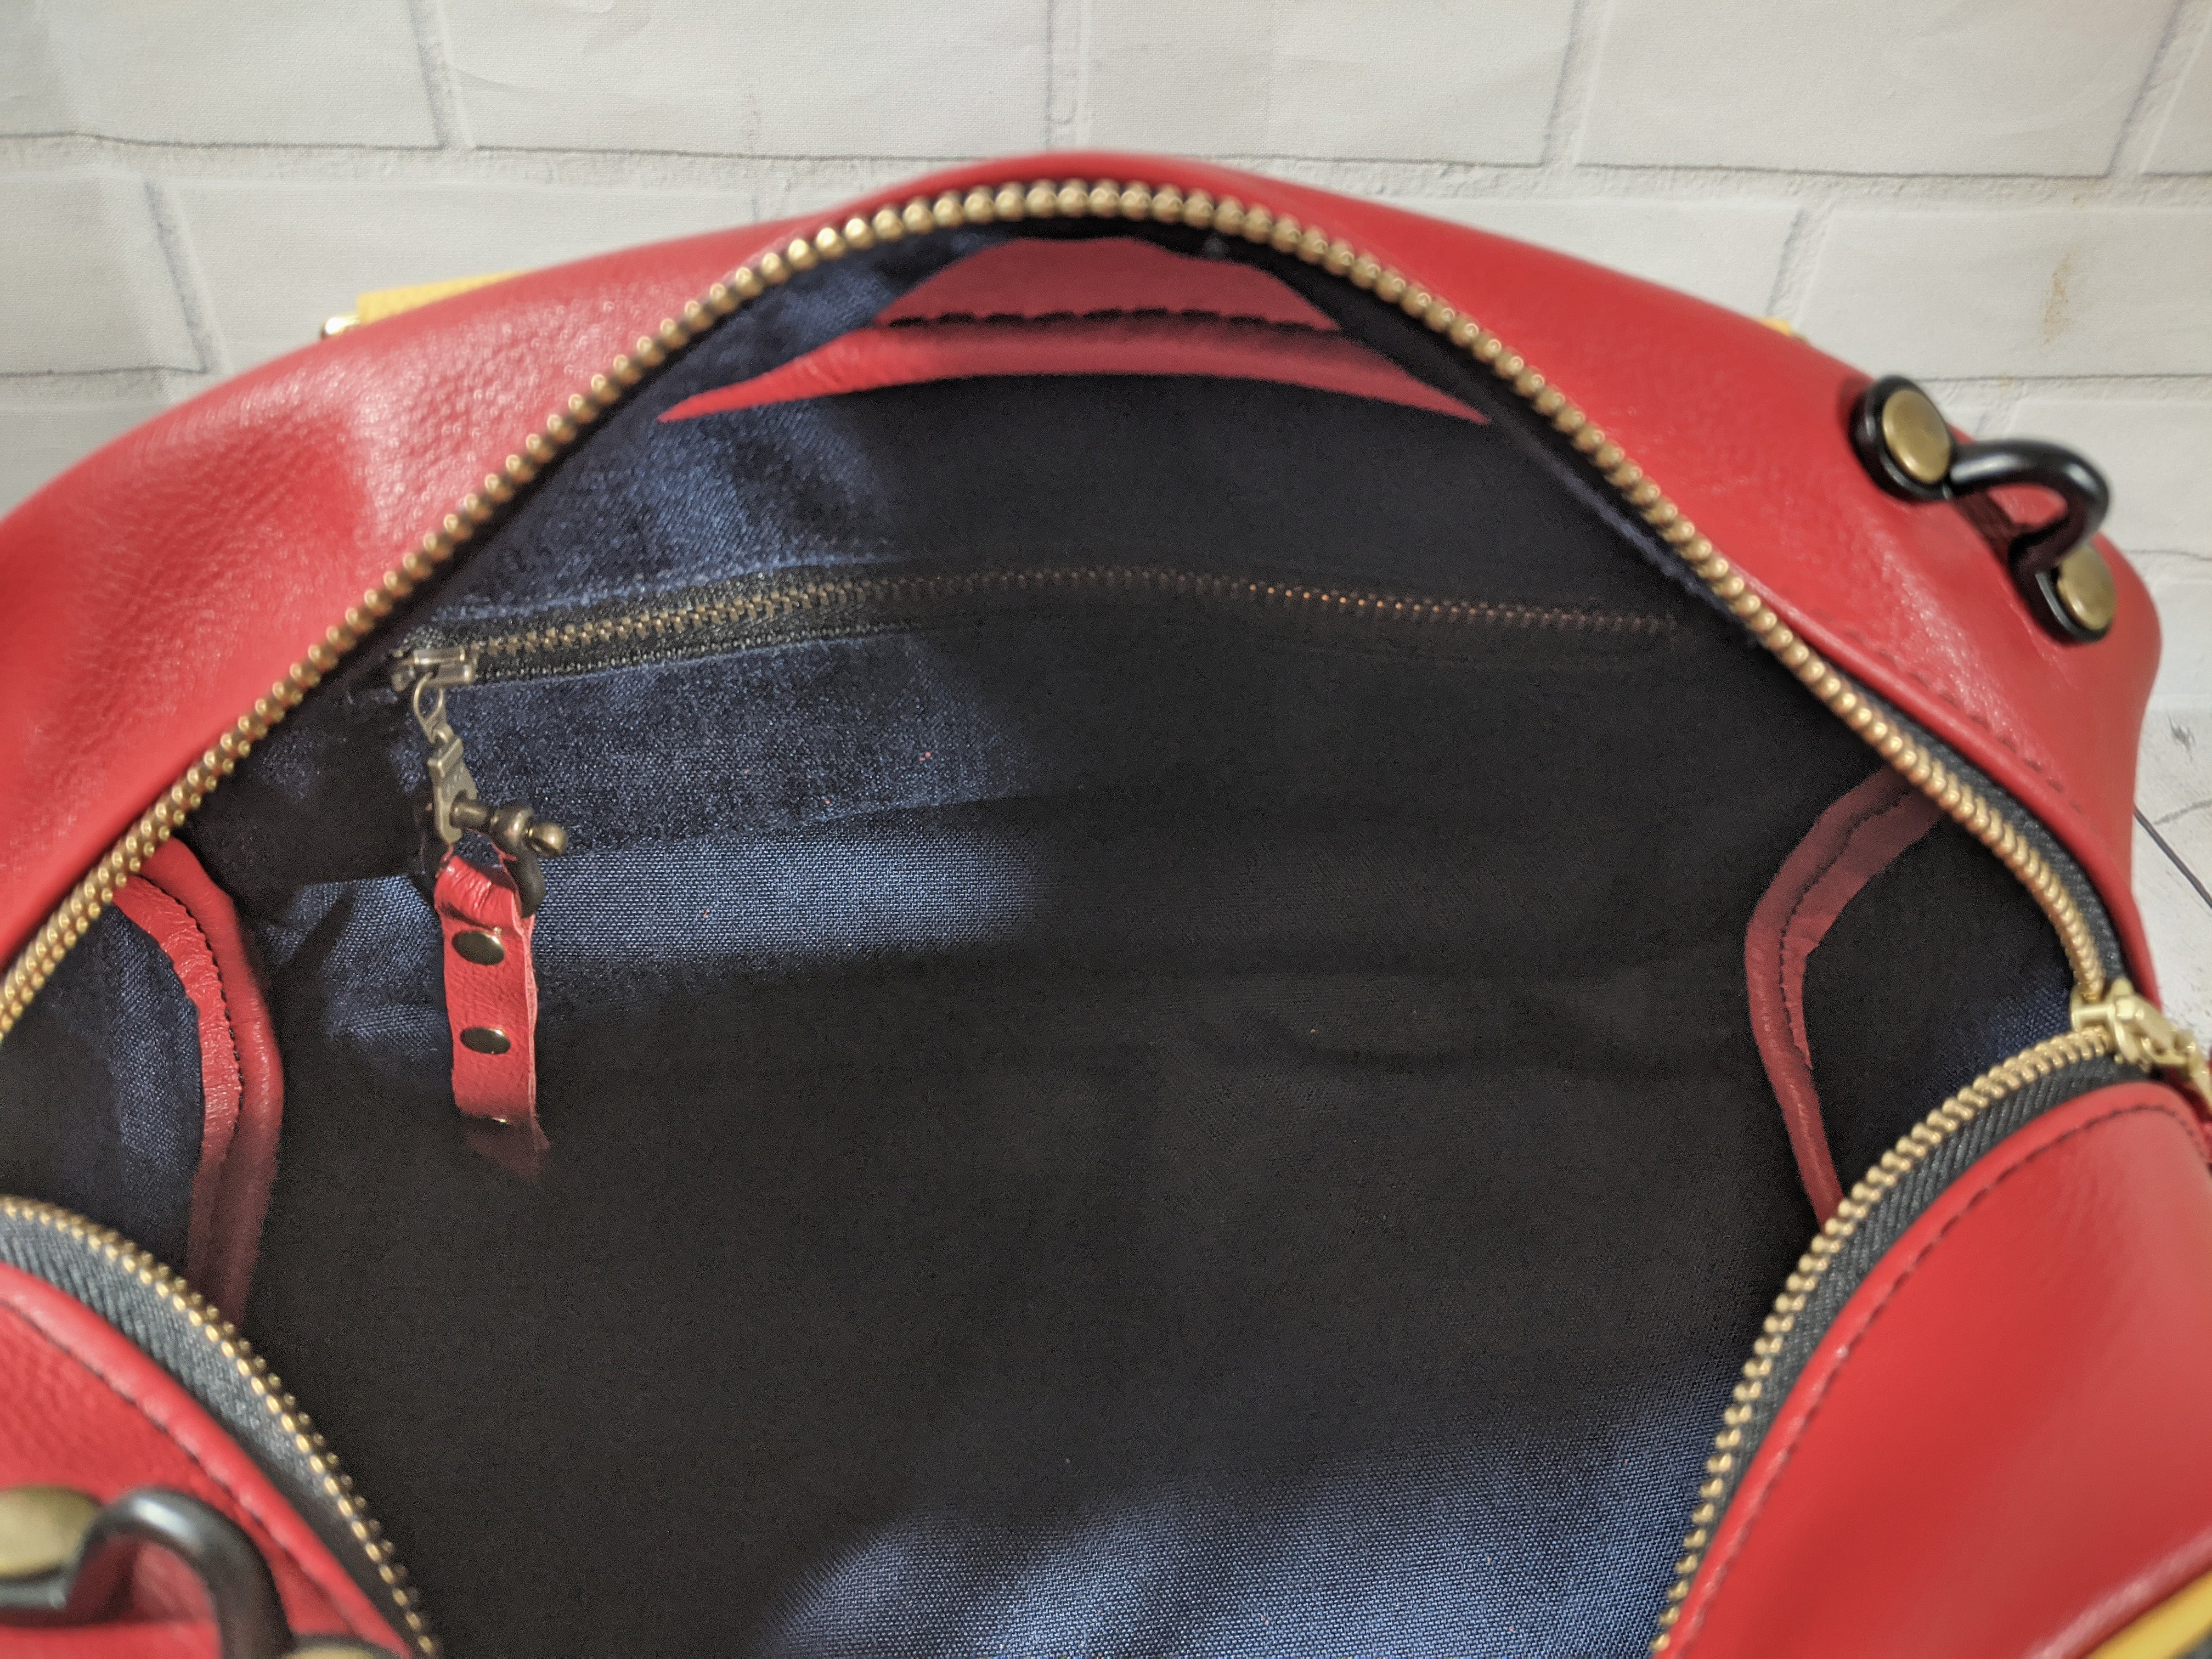 Leather shoulder bag, satchel, handbag, retro Captain Marvel inspired bag